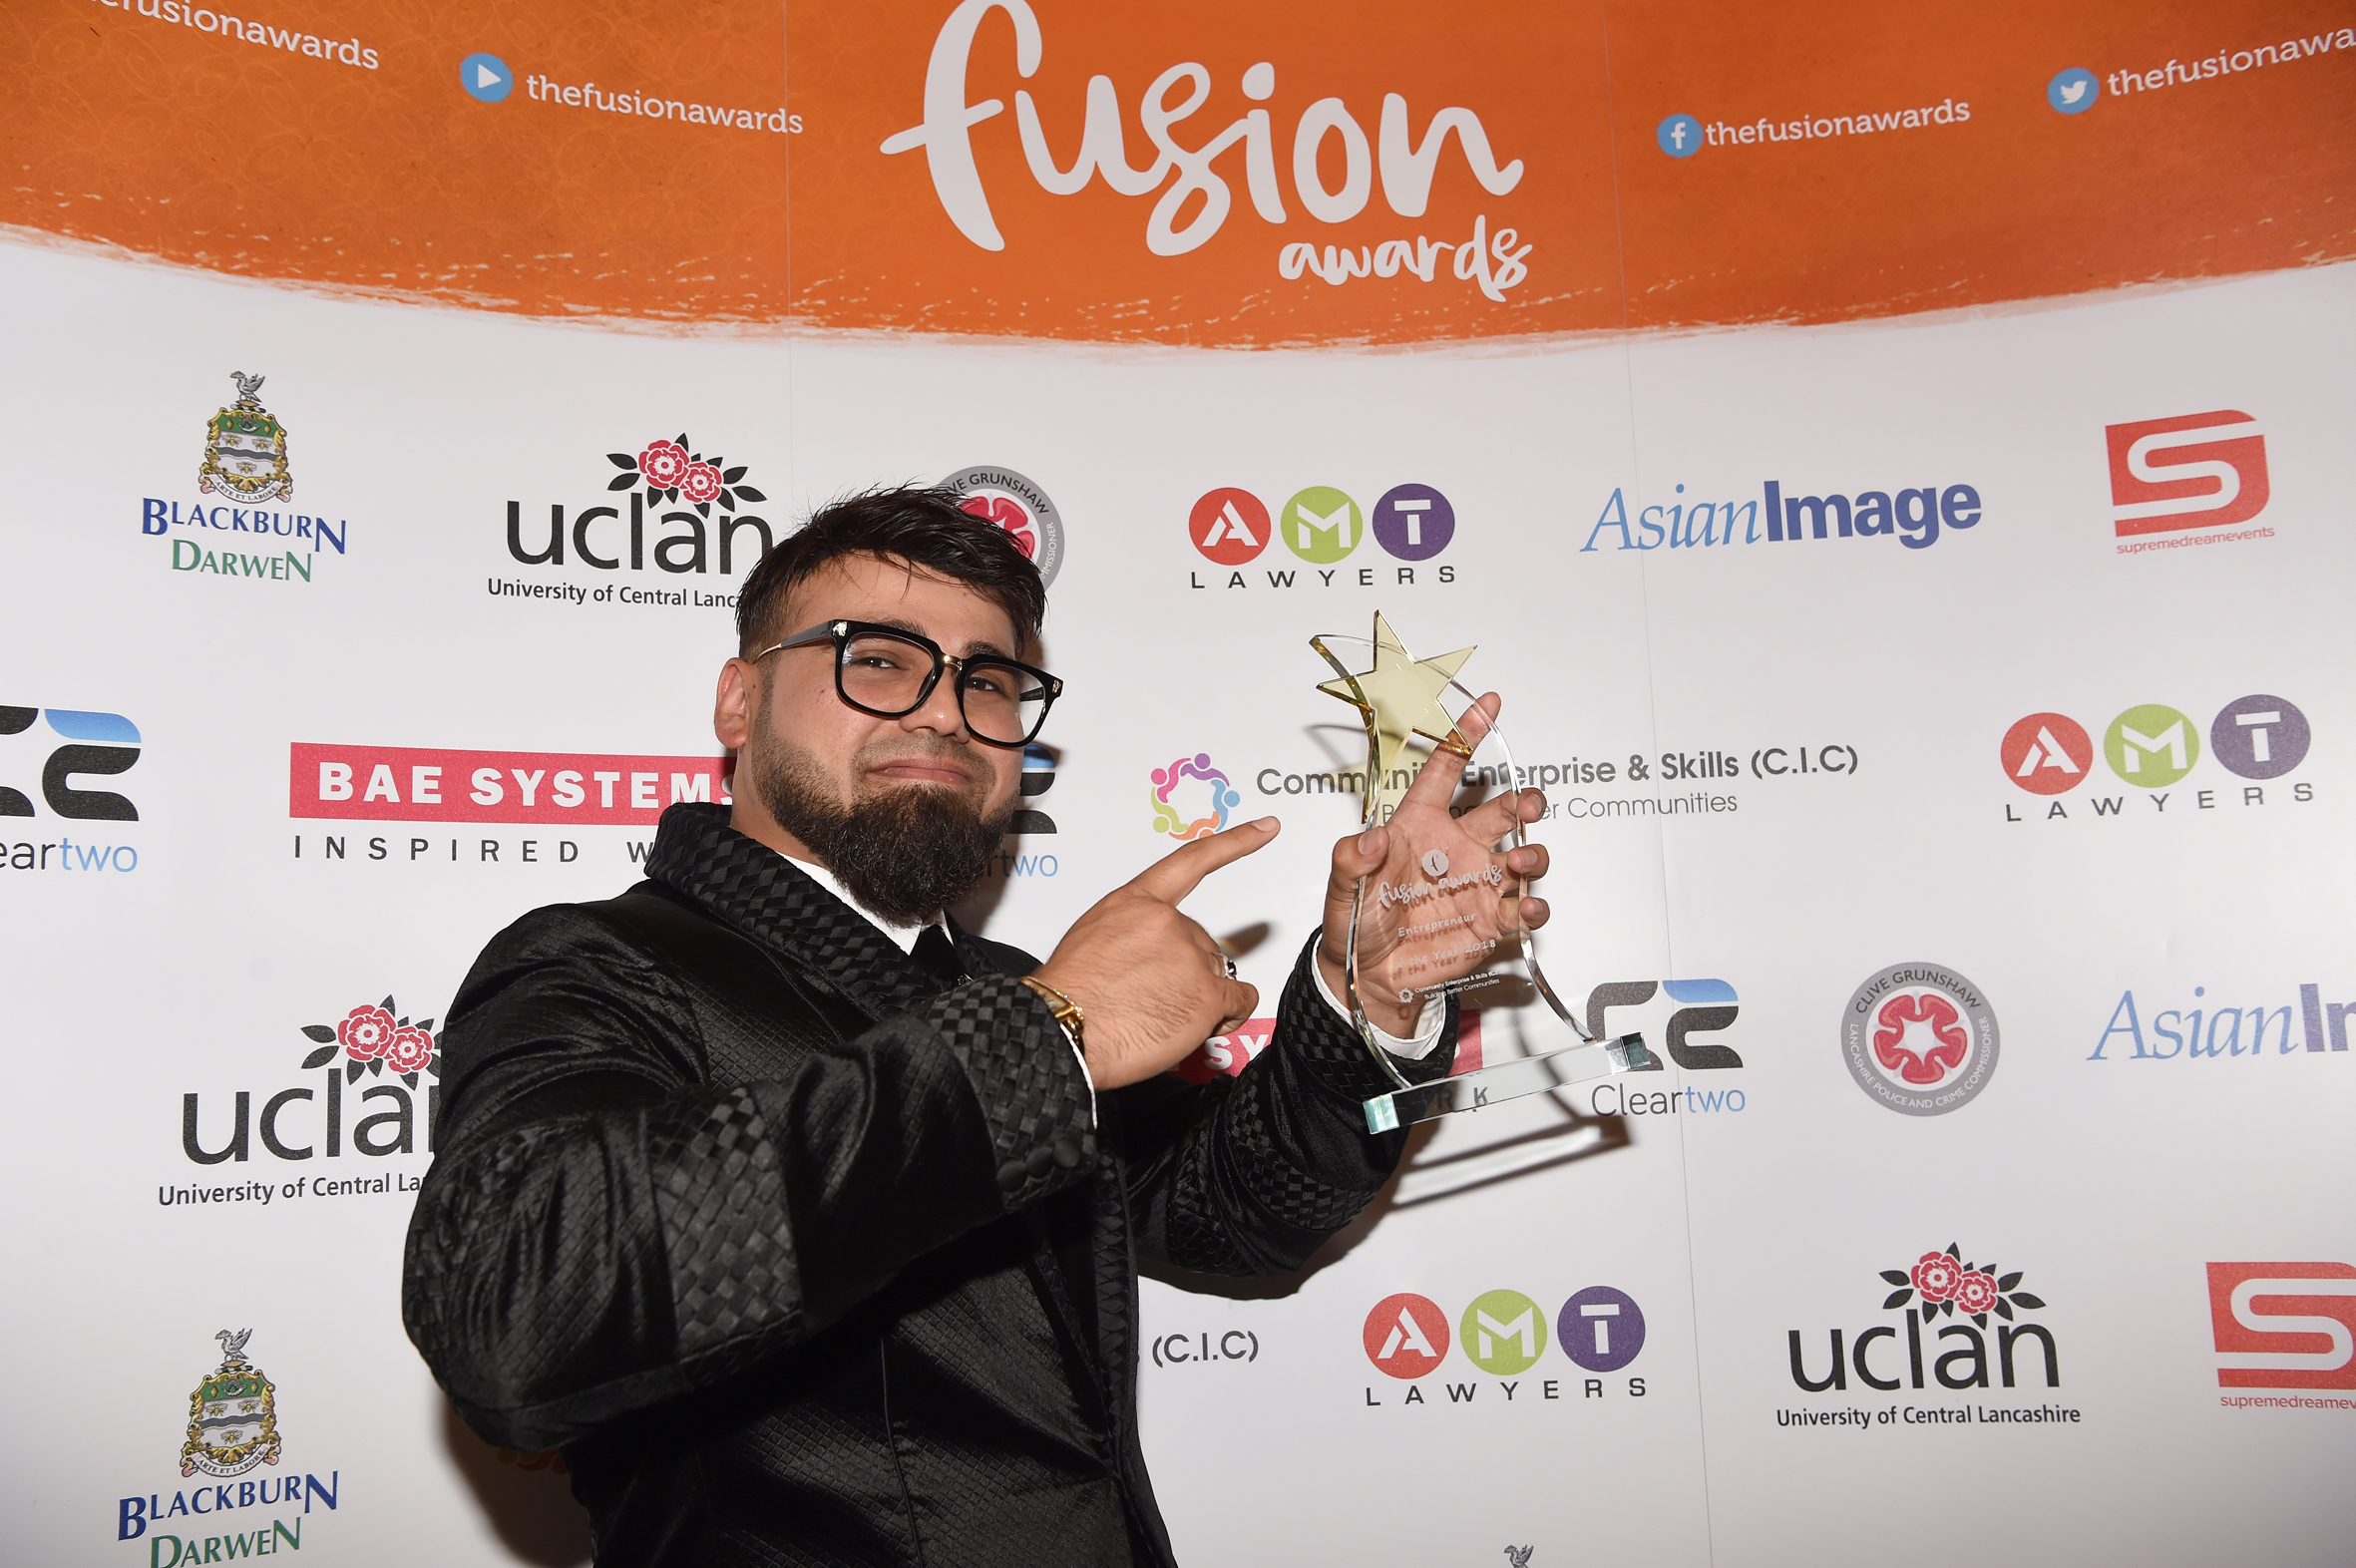 Fashion designer Bilal wins Entrepreneur Award